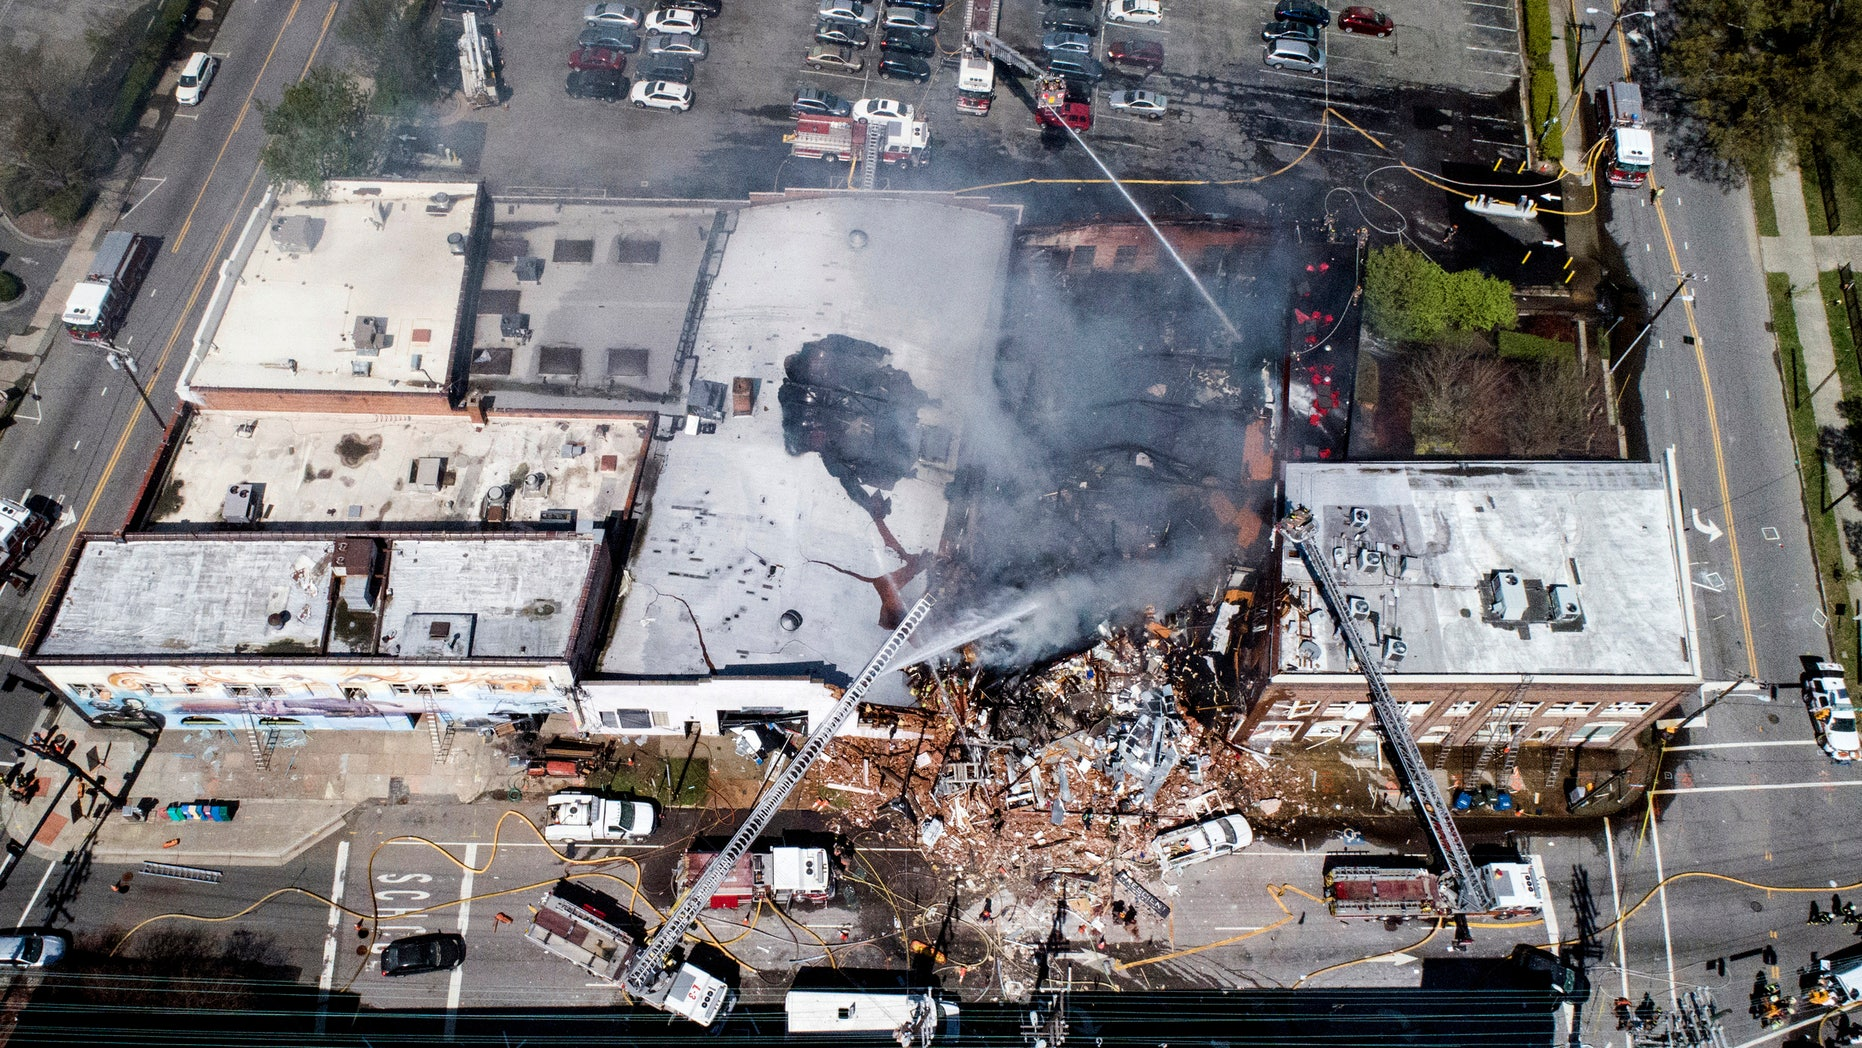 In this aerial photo, firefighters battle a fire at the scene of an explosion in Durham, N.C. Wednesday, April 10, 2019. ()